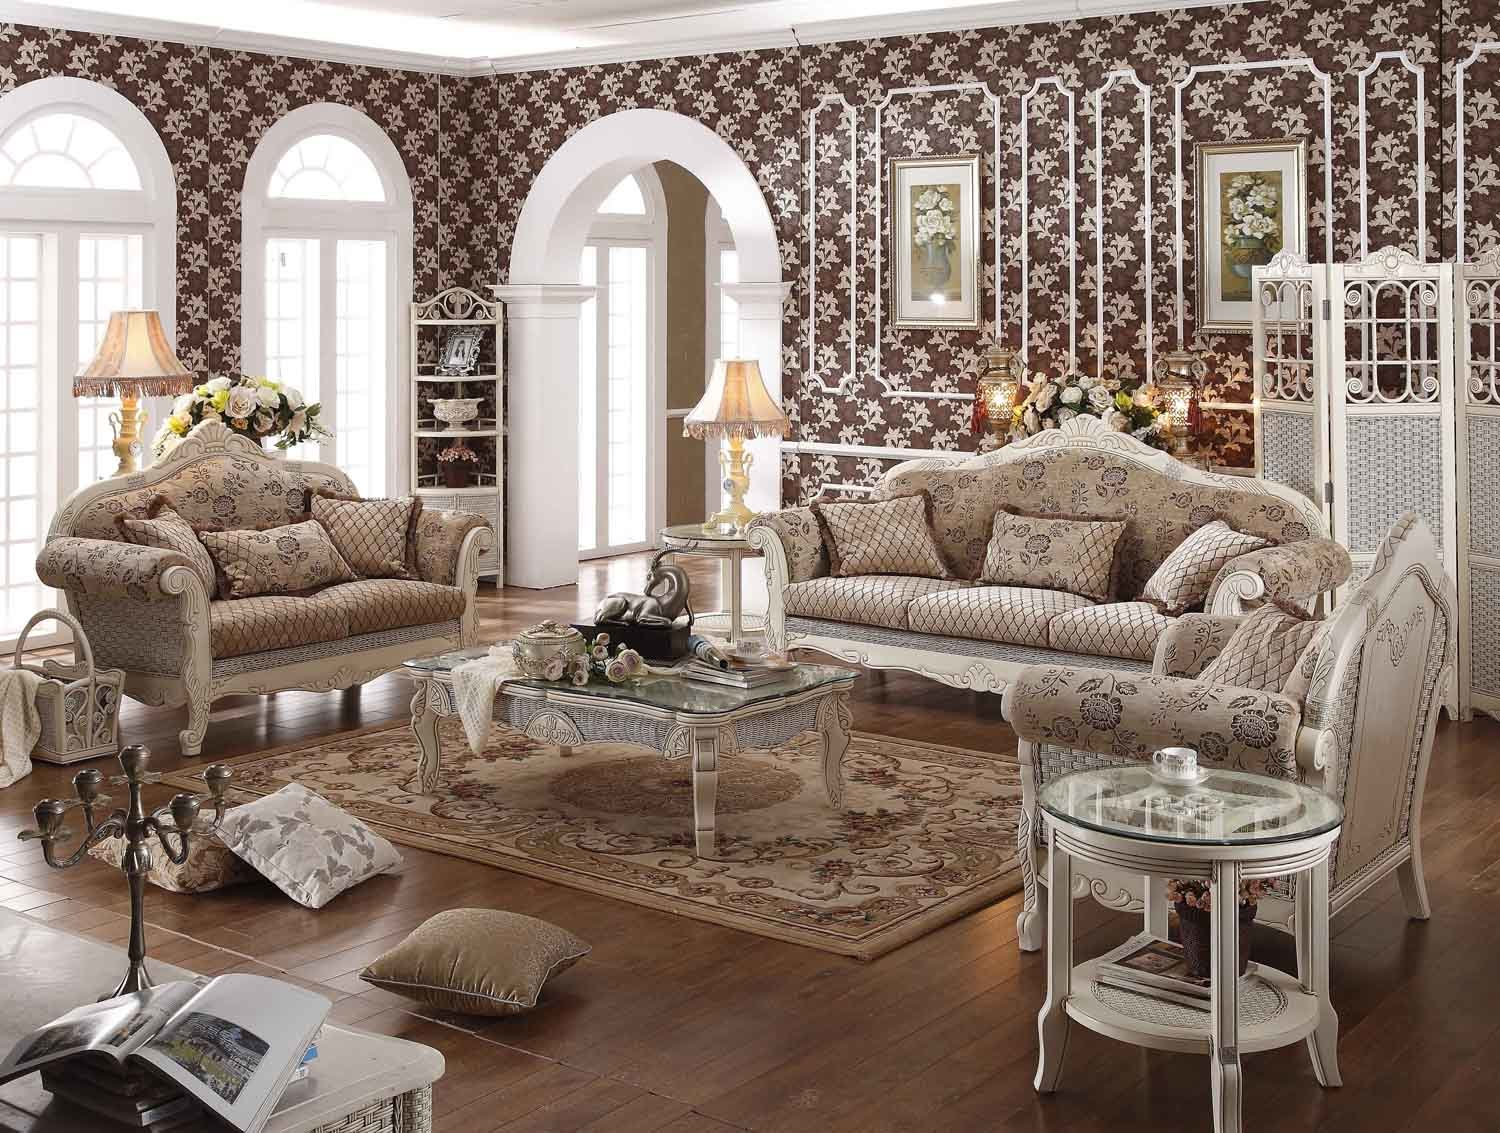 Wicker living room furniture contemporary living room ideas for Wicker living room furniture